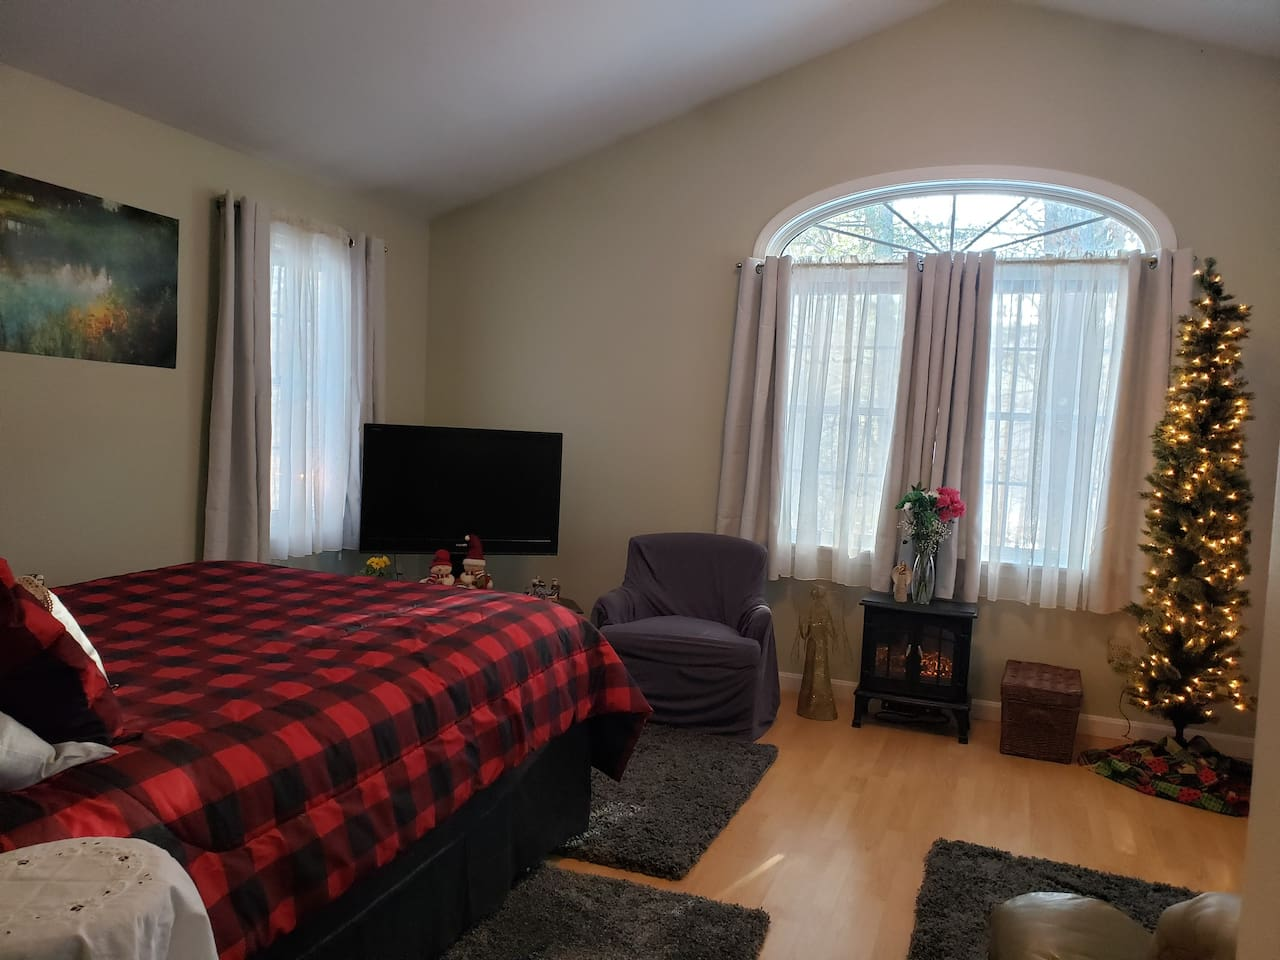 Elegant and spacious bedroom with 42 inch flat screen TV with cable and Wi-Fi included.  Infrared heater for ambiance and warmth.